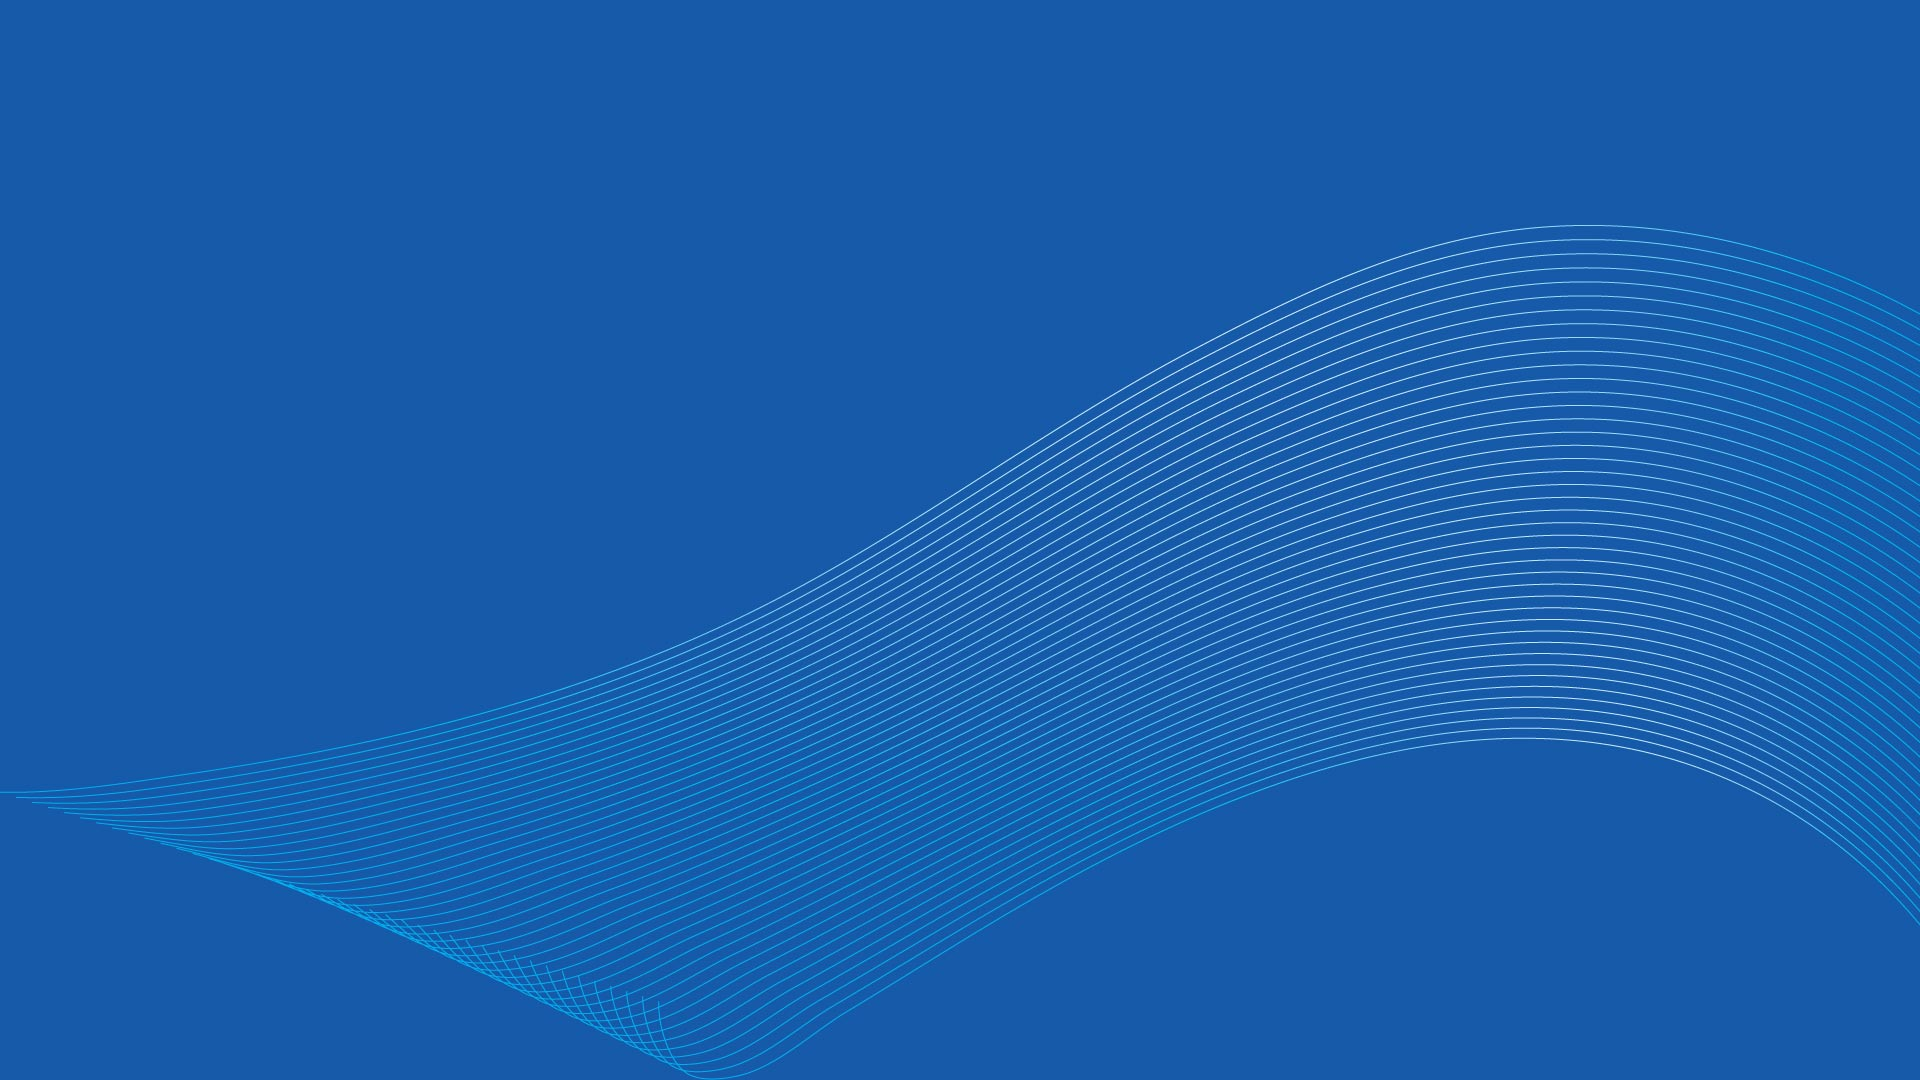 1000 Blue Abstract Background Images Free Download Vector Png